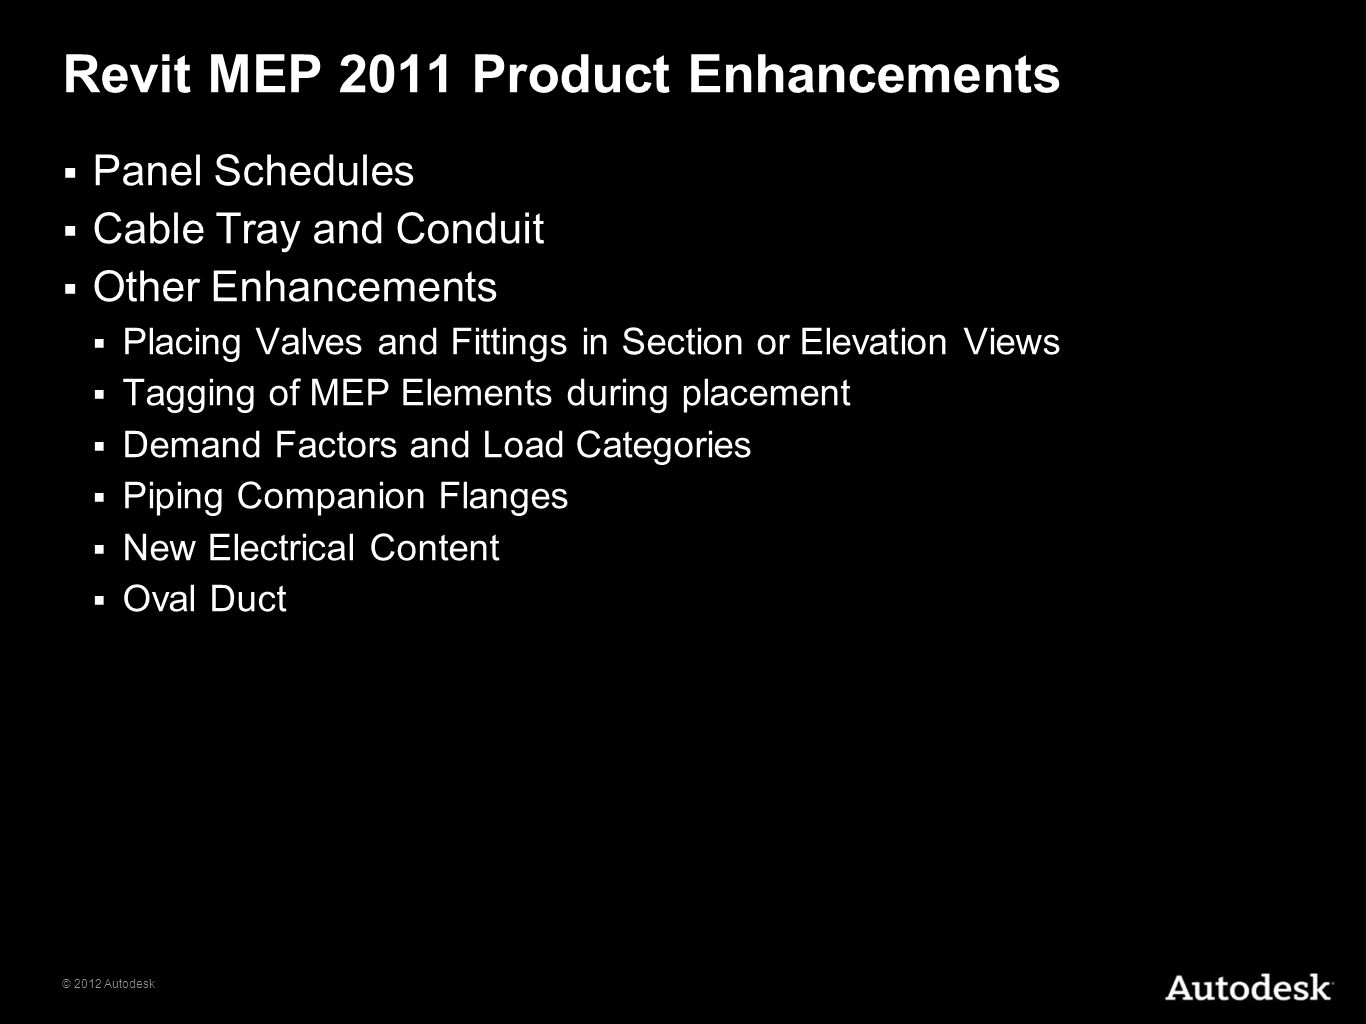 Revit MEP 2011 Product Enhancements